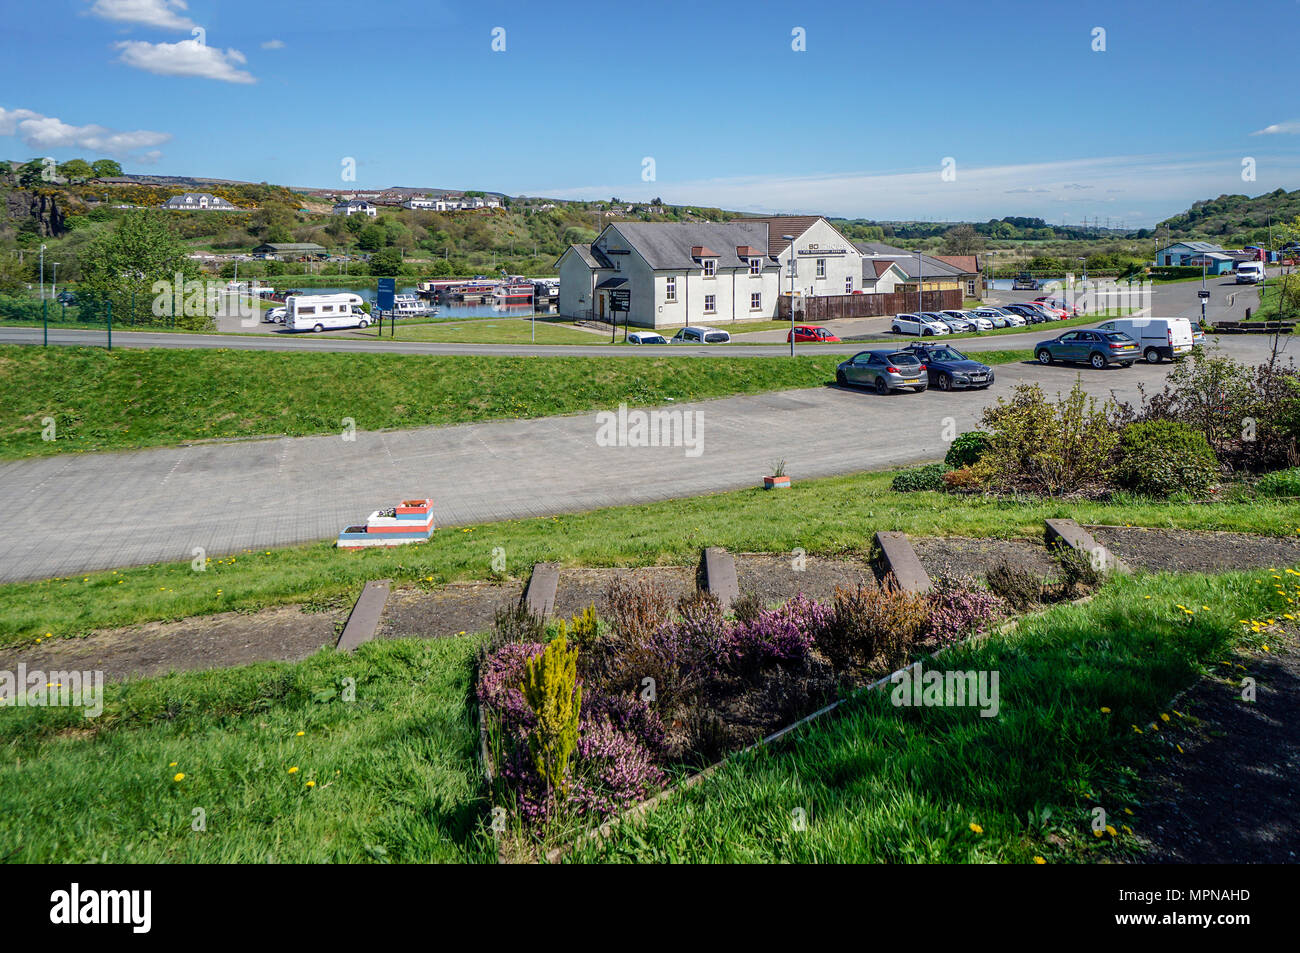 Boats moored in the basin on the Forth and Clyde Canal at village Auchinstarry near Kilsyth North Lanarkshire Scotland UK with The Boat House front. - Stock Image